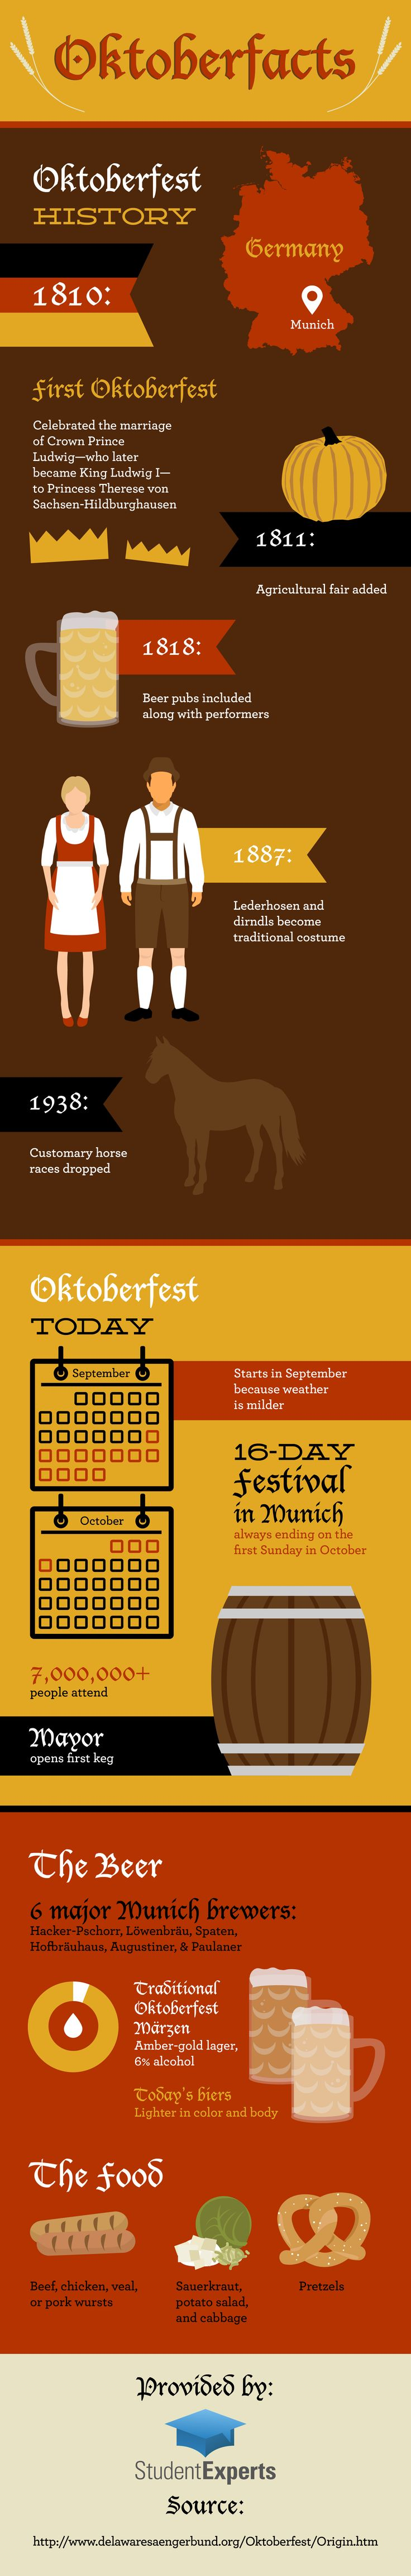 Oktoberfacts! Oktoberfest Infographic | Inspiration for raredirndl.com